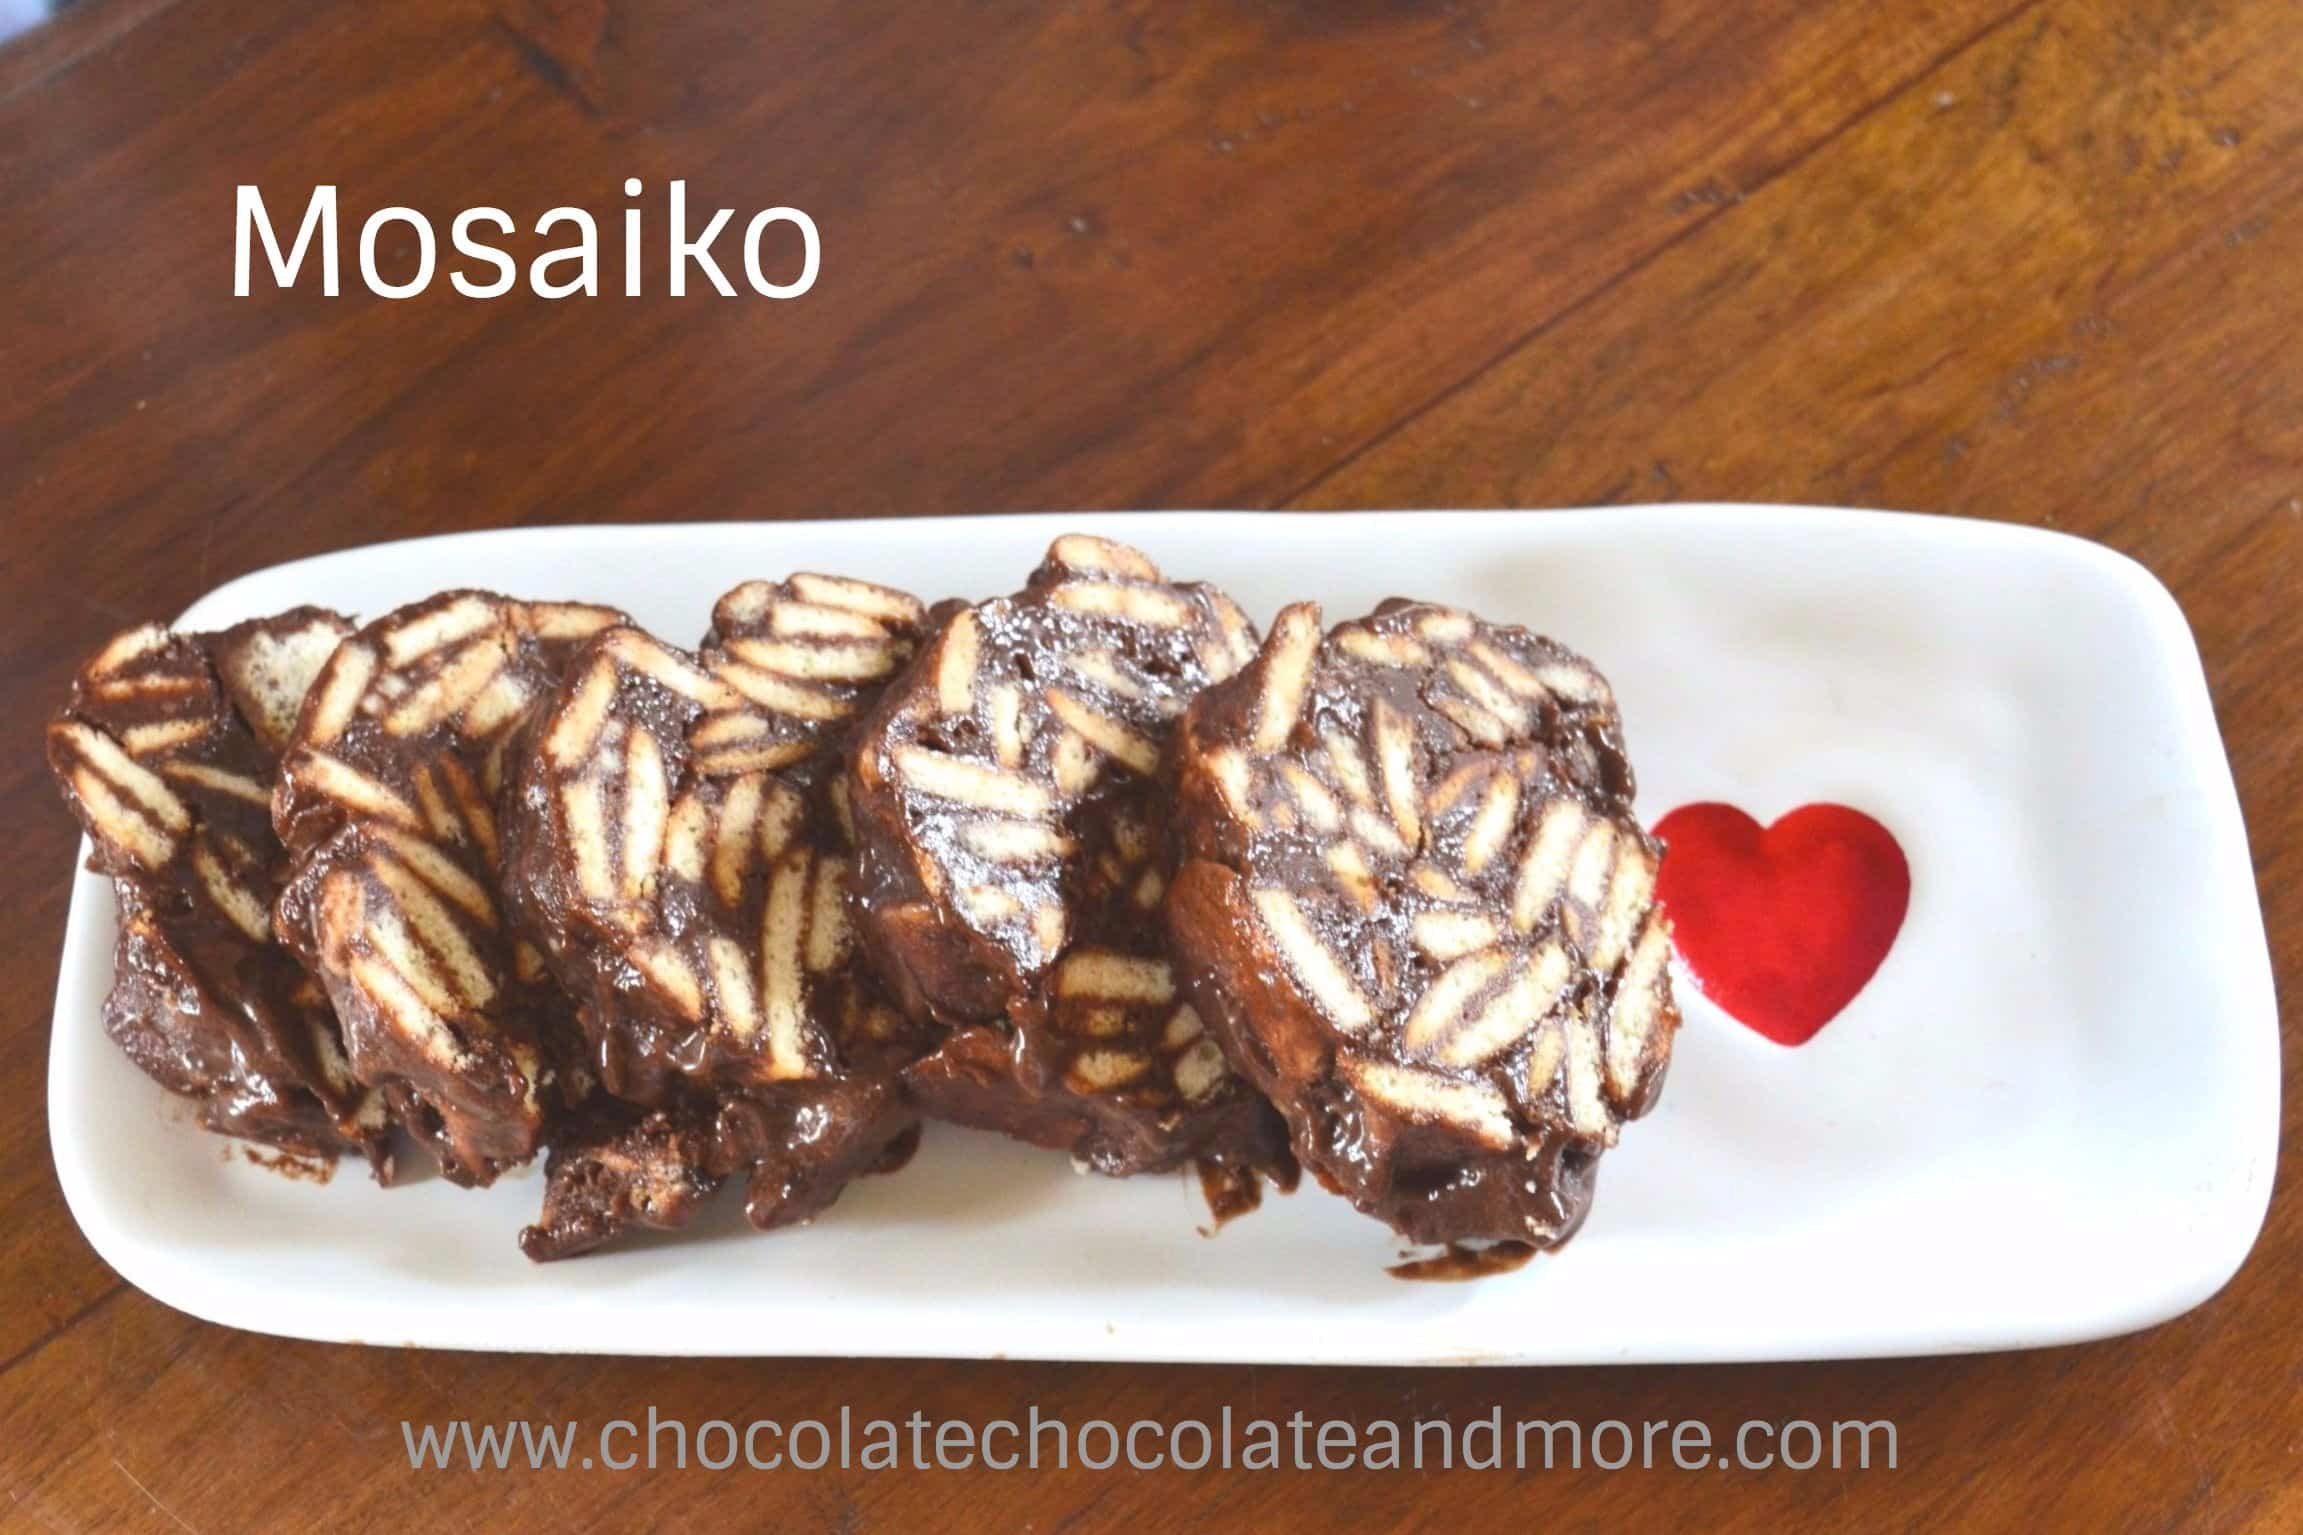 Mosaiko chocolate chocolate and more im back overseas again and this time my house had almost no cooking equipment when i arrived cambodian houses usually just have gas burners think a nice forumfinder Gallery